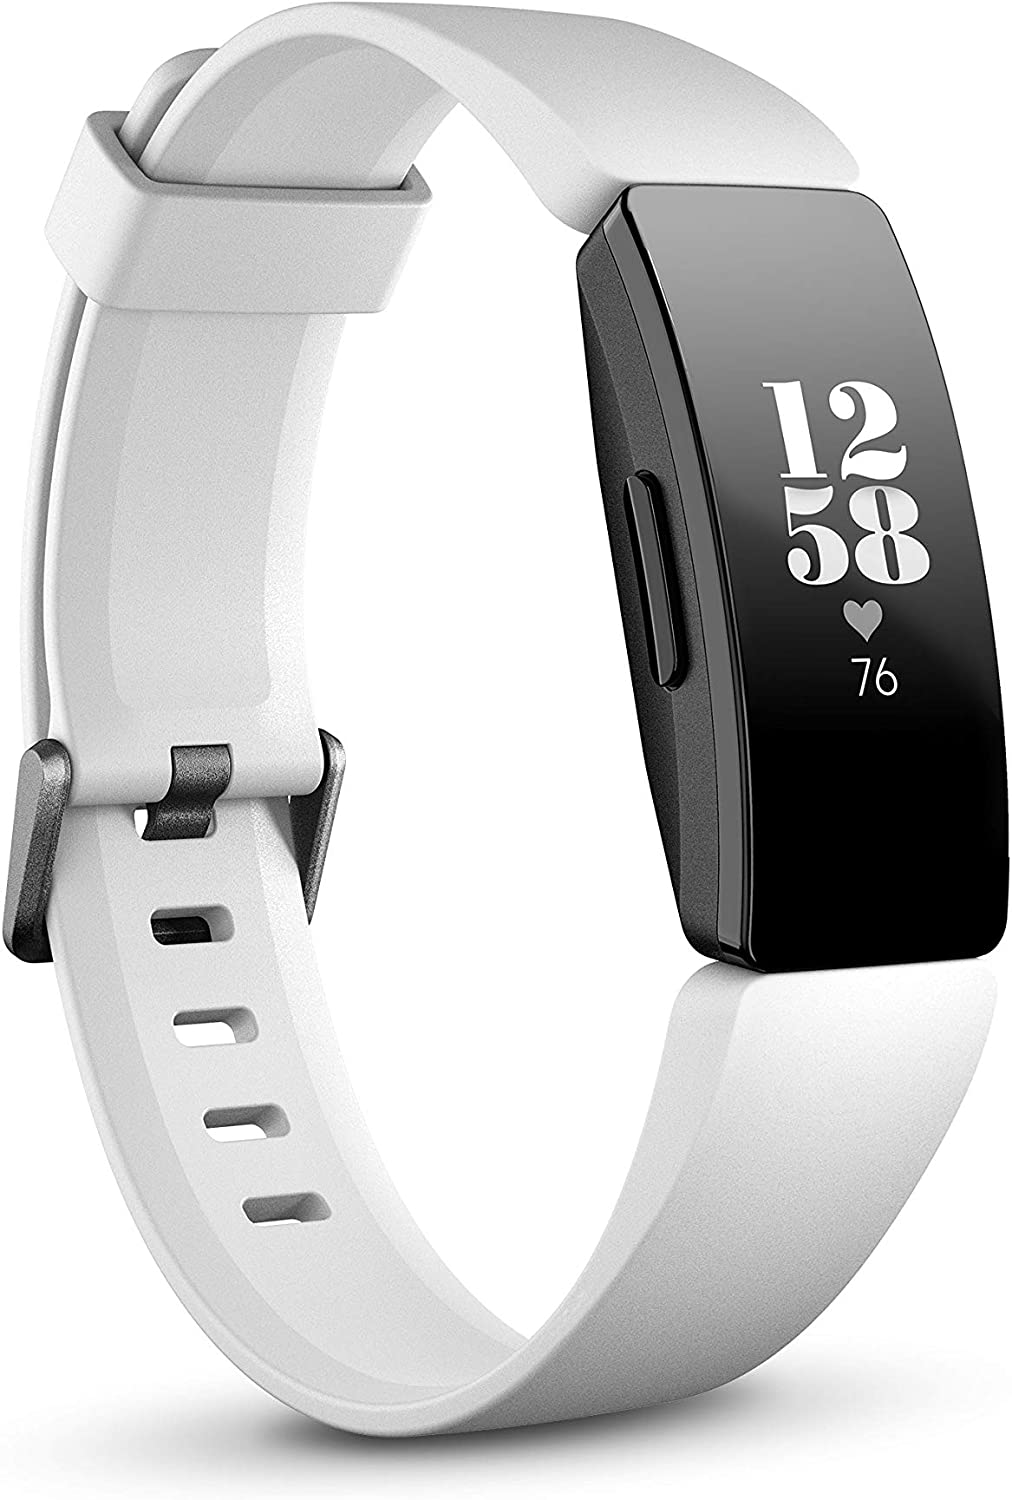 Fitbit Inspire HR-top swimming watch for tracking